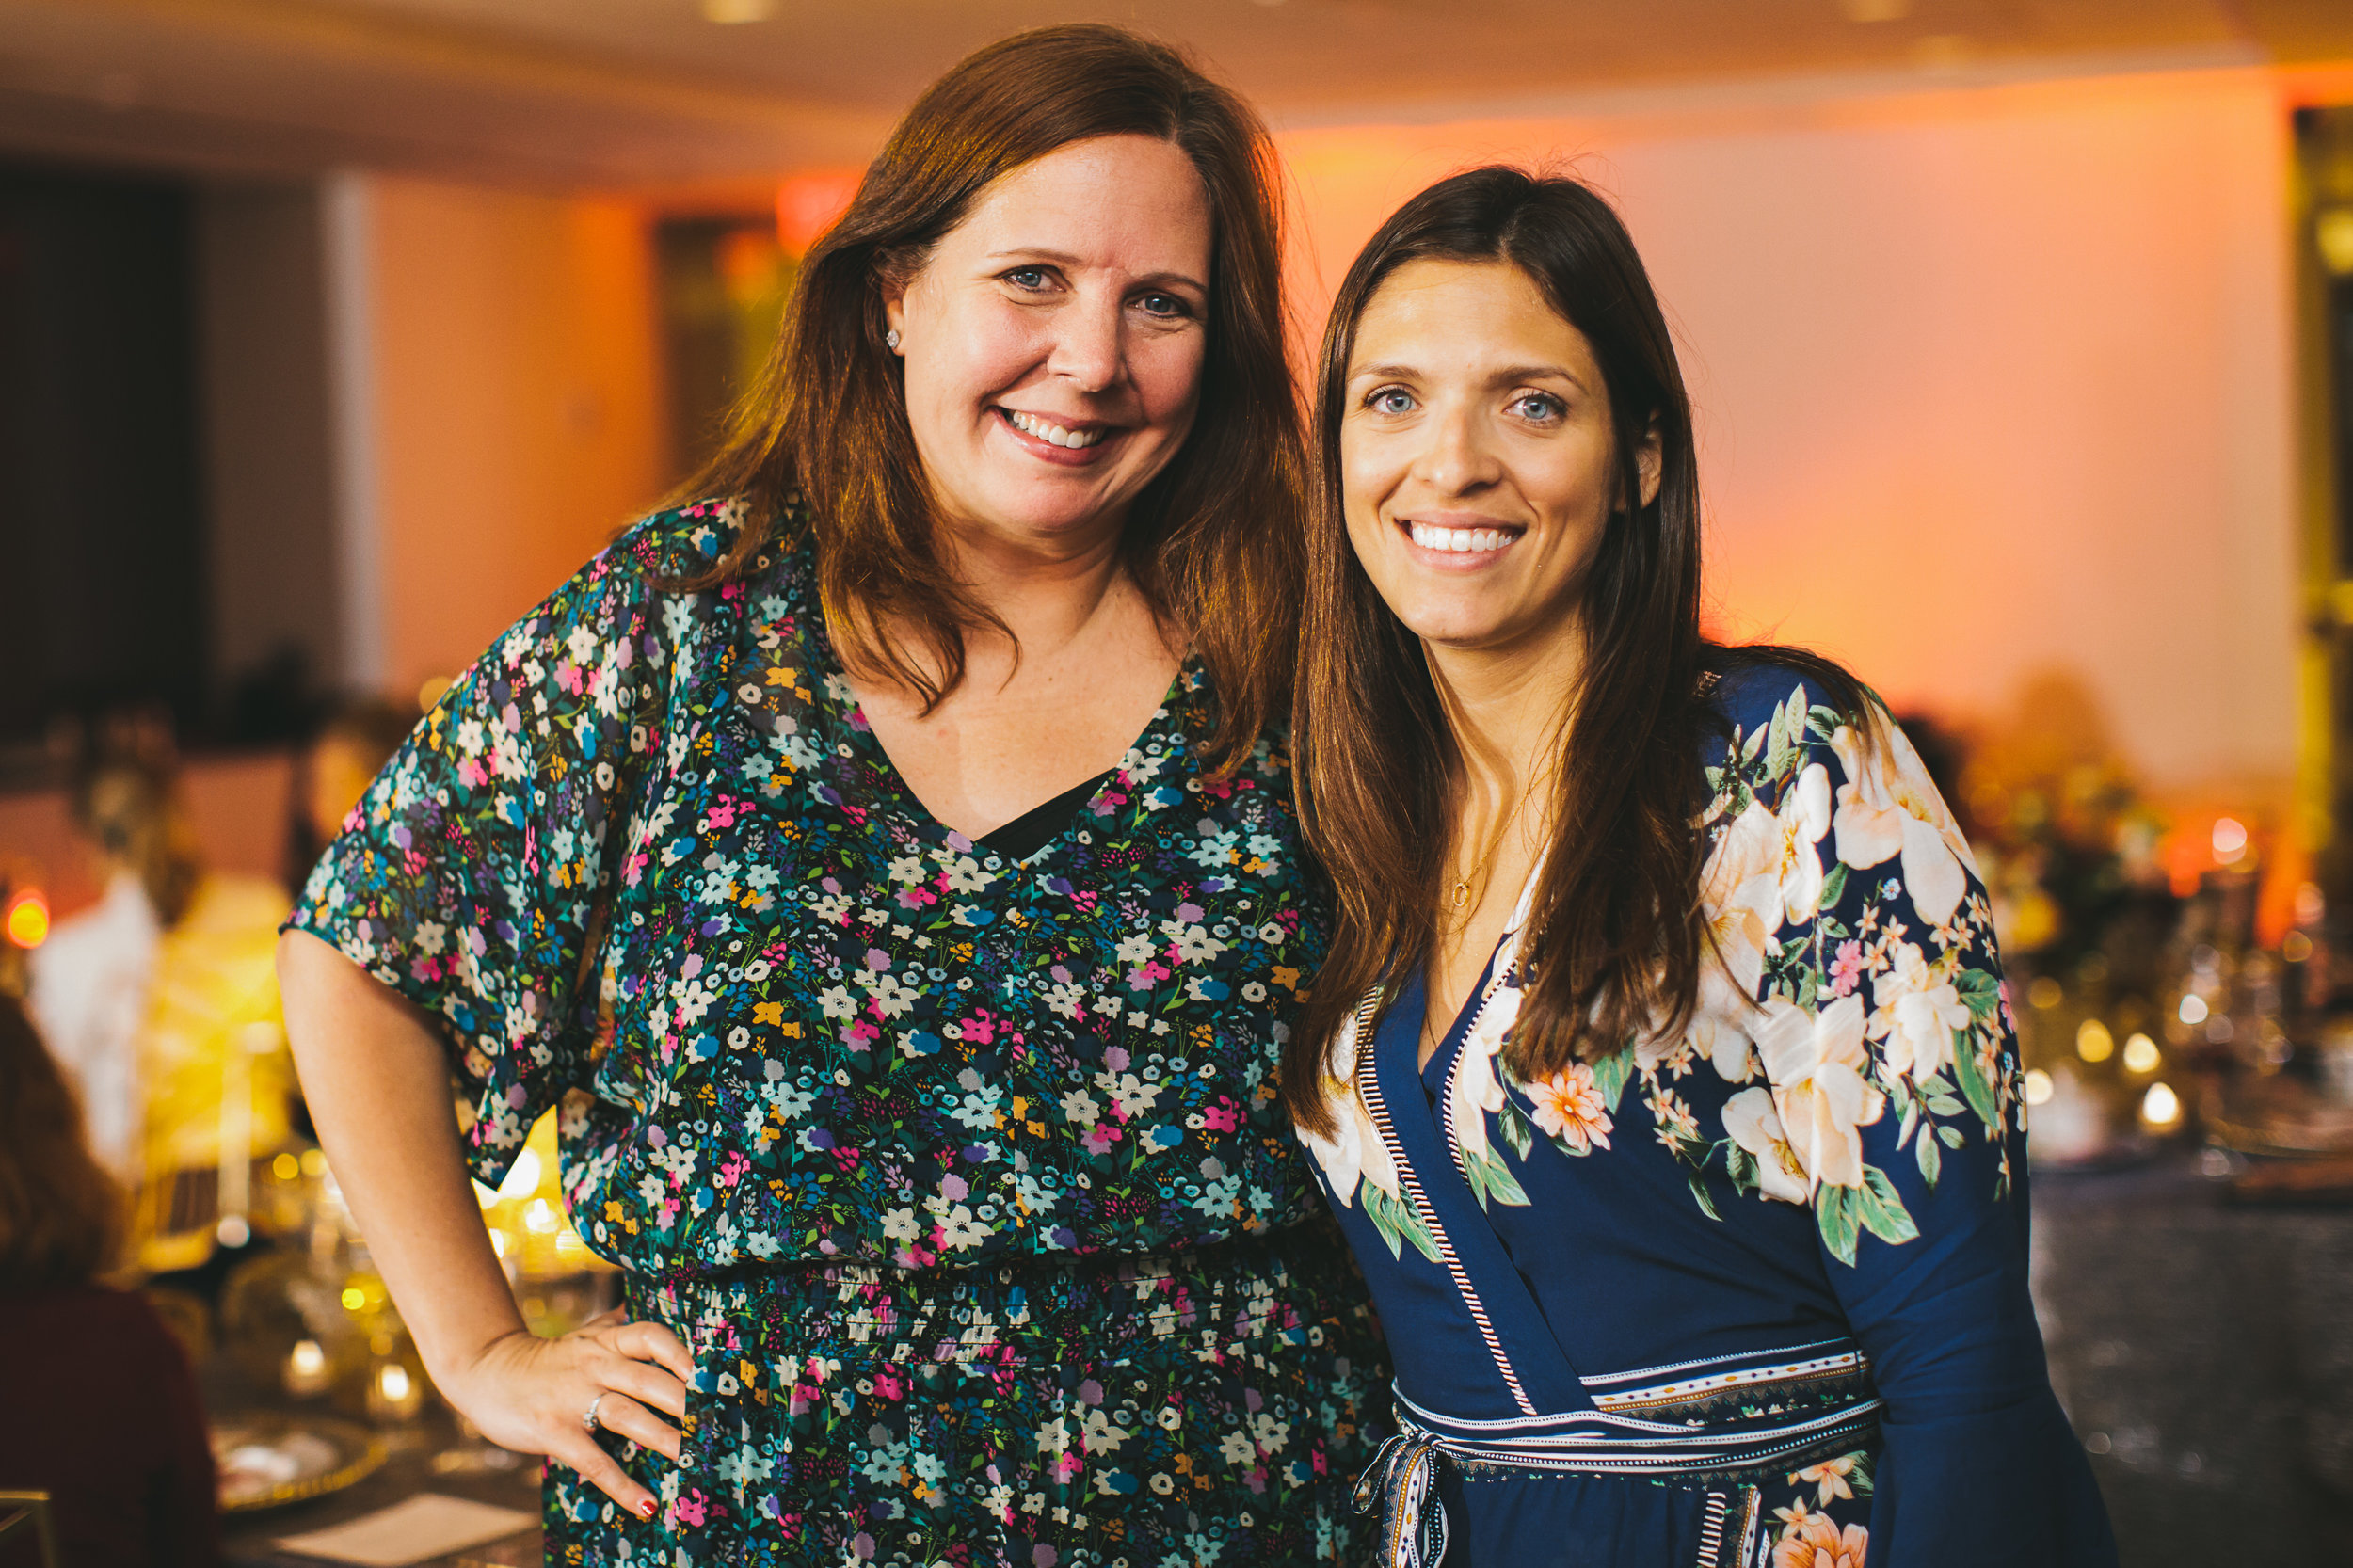 Co-creators of Boston Planners Dining Club, Tammy Golson of Tammy Golson Events and Sarah Glick of Brilliant Event Planning.  Photo by Lindsay Hite Photography.